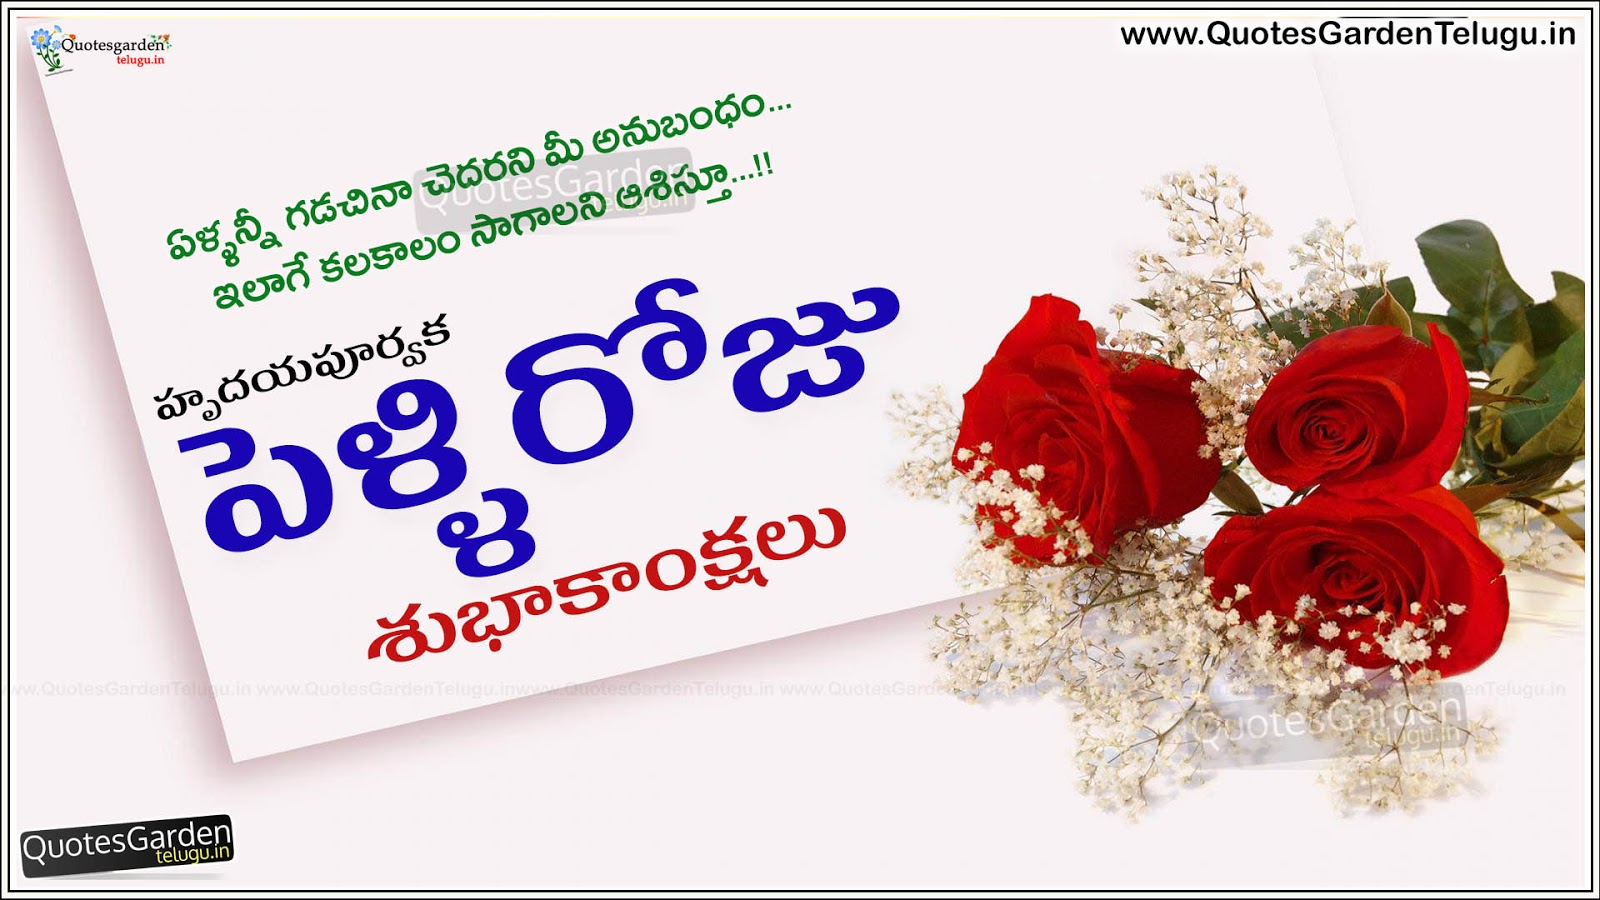 Happy Marriage Day Greetings Wishes In Telugu Quotes Garden Telugu